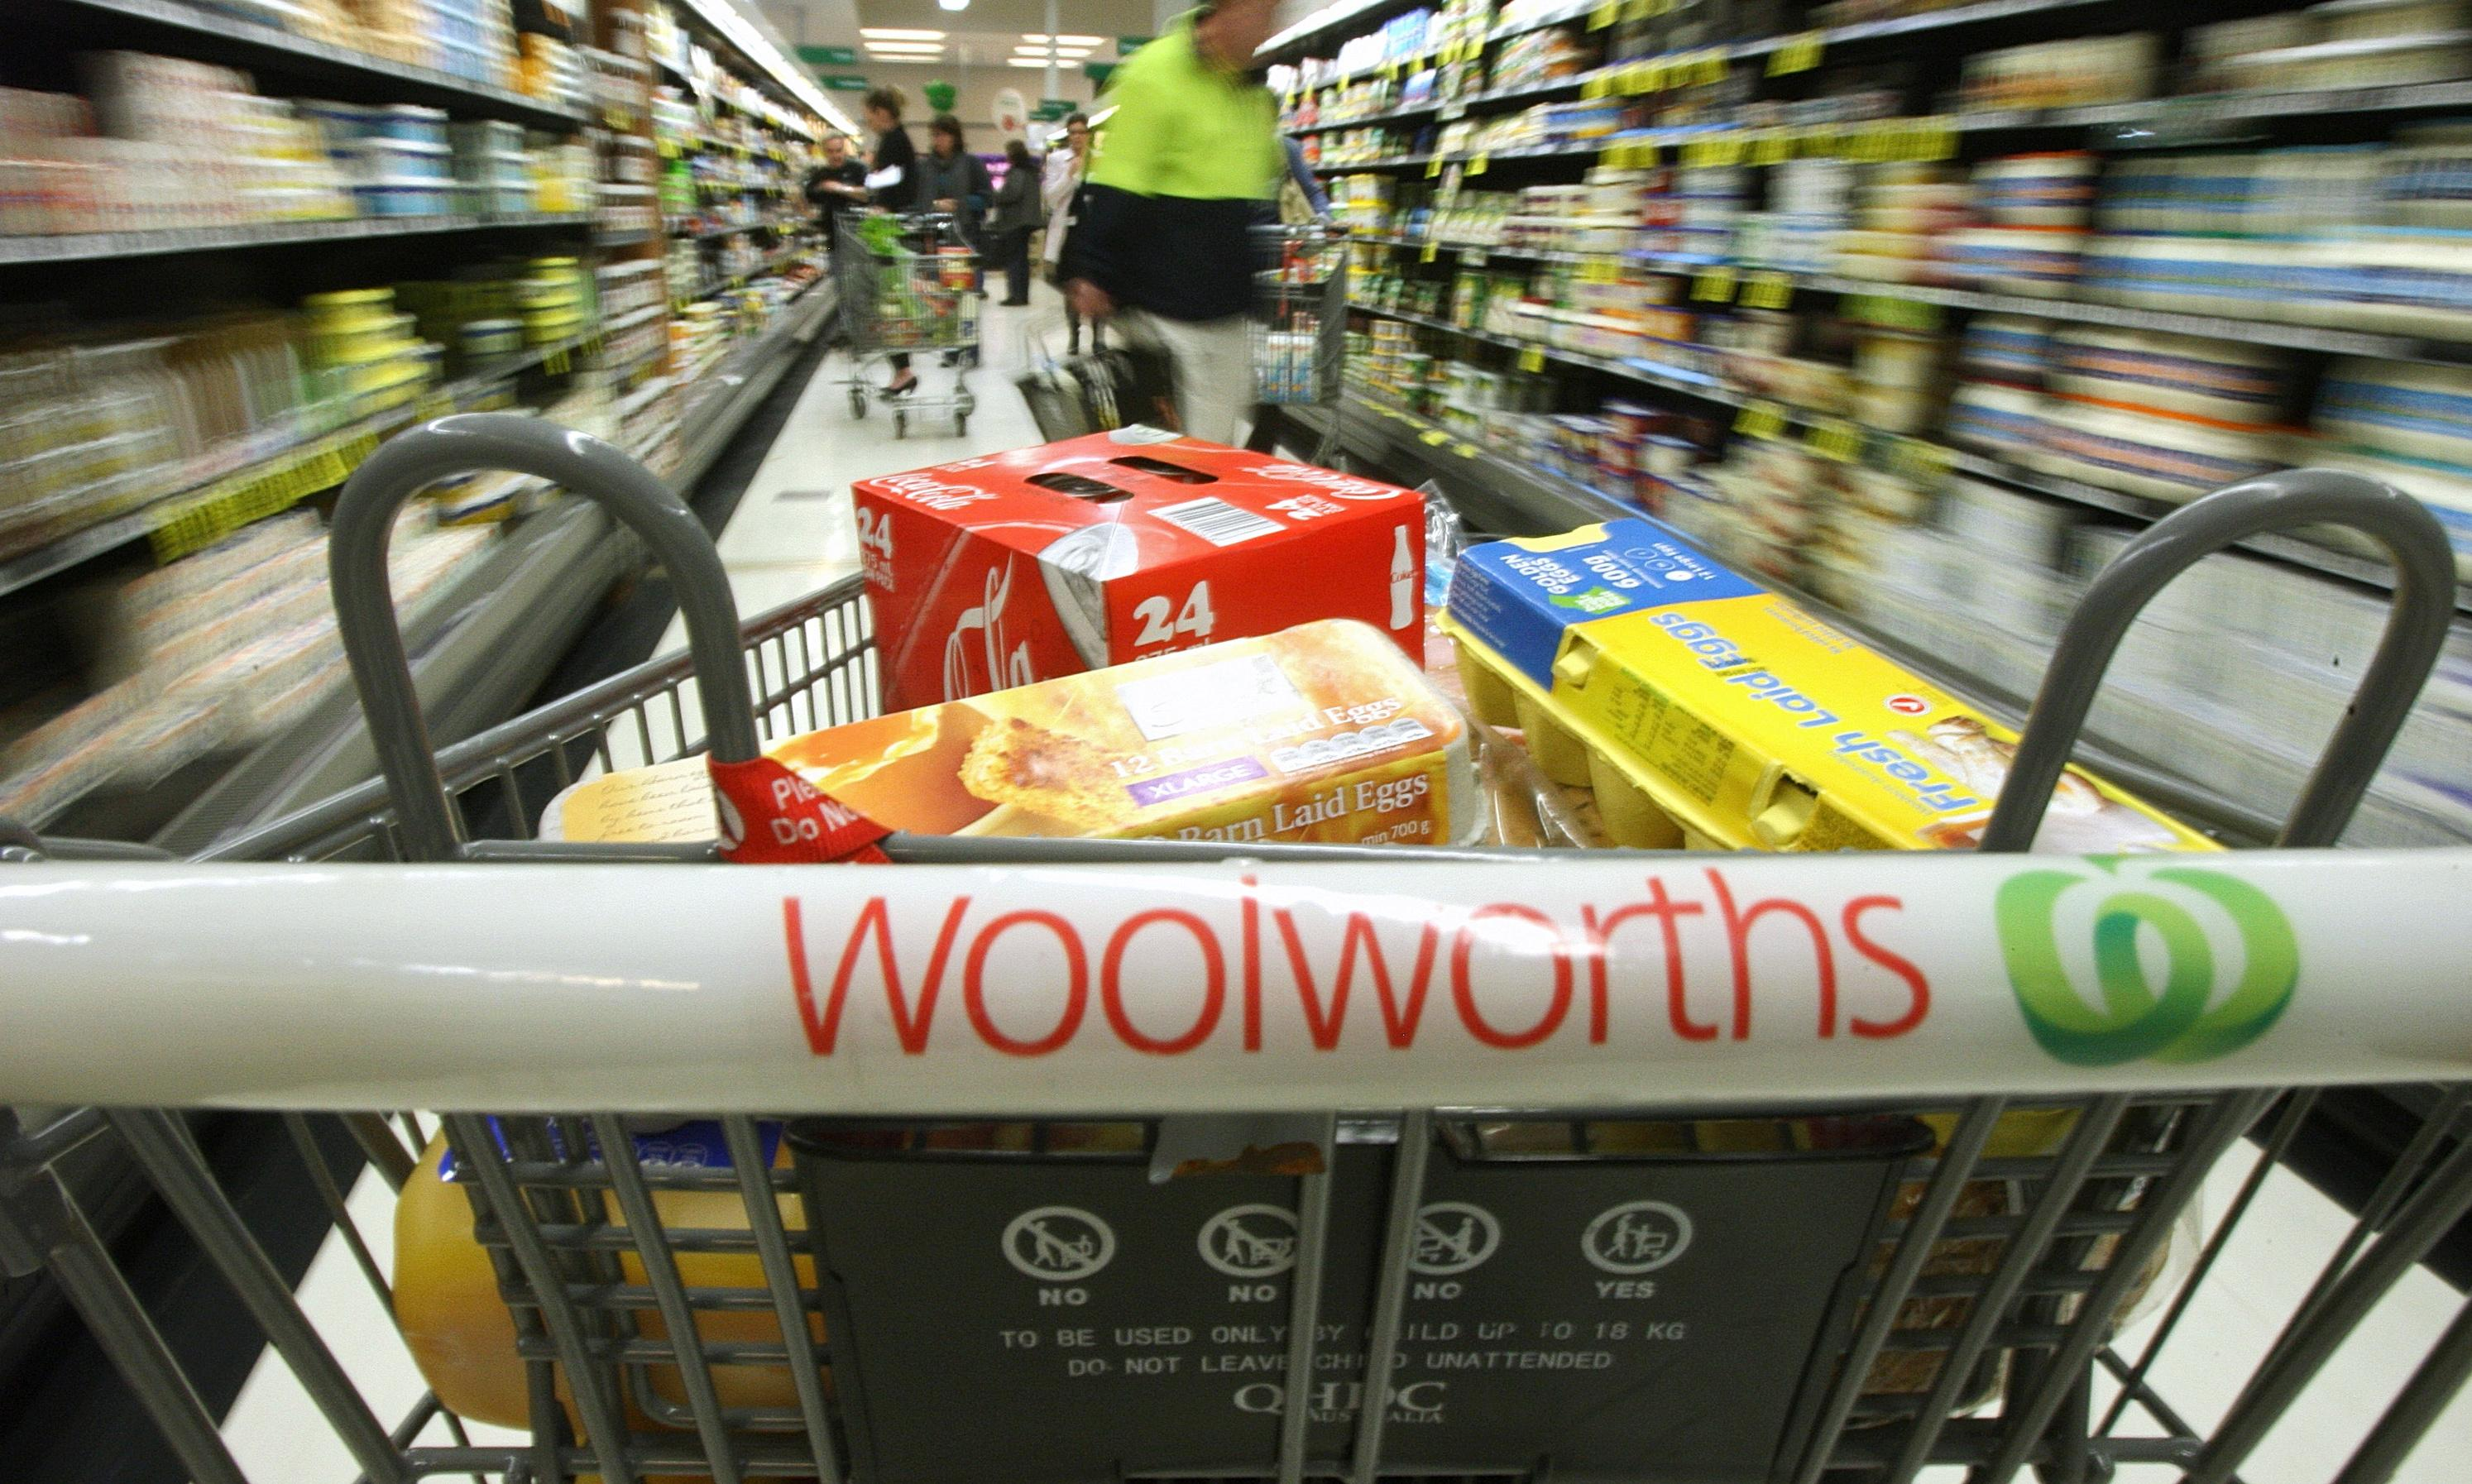 Woolworths underpaid thousands of workers by up to $300m